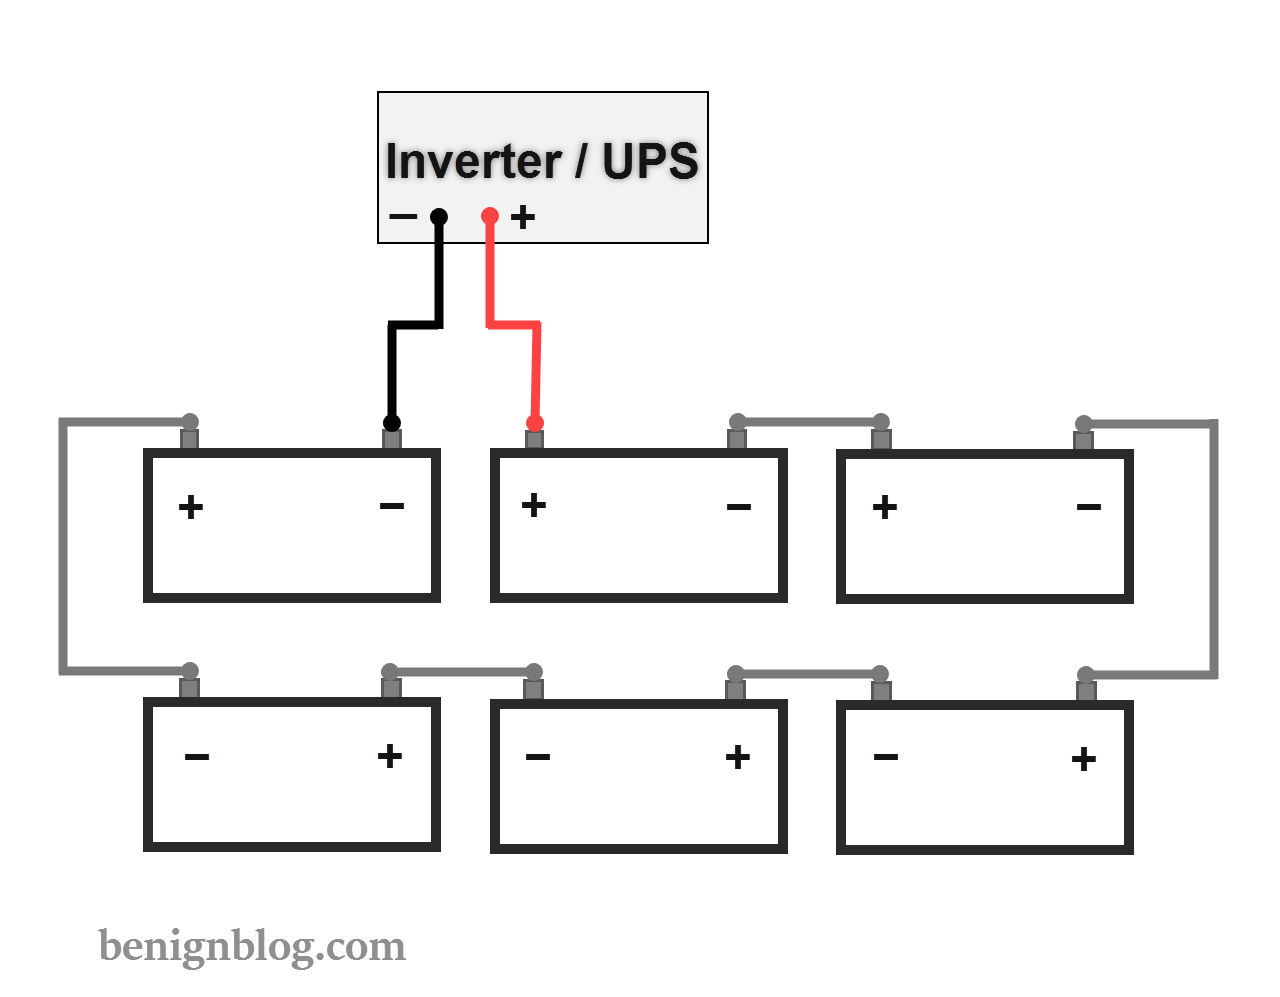 small resolution of how to connect batteries in series with power inverter or ups wiring diagram for 2 12 volt batteries in series wiring diagram for batteries in series